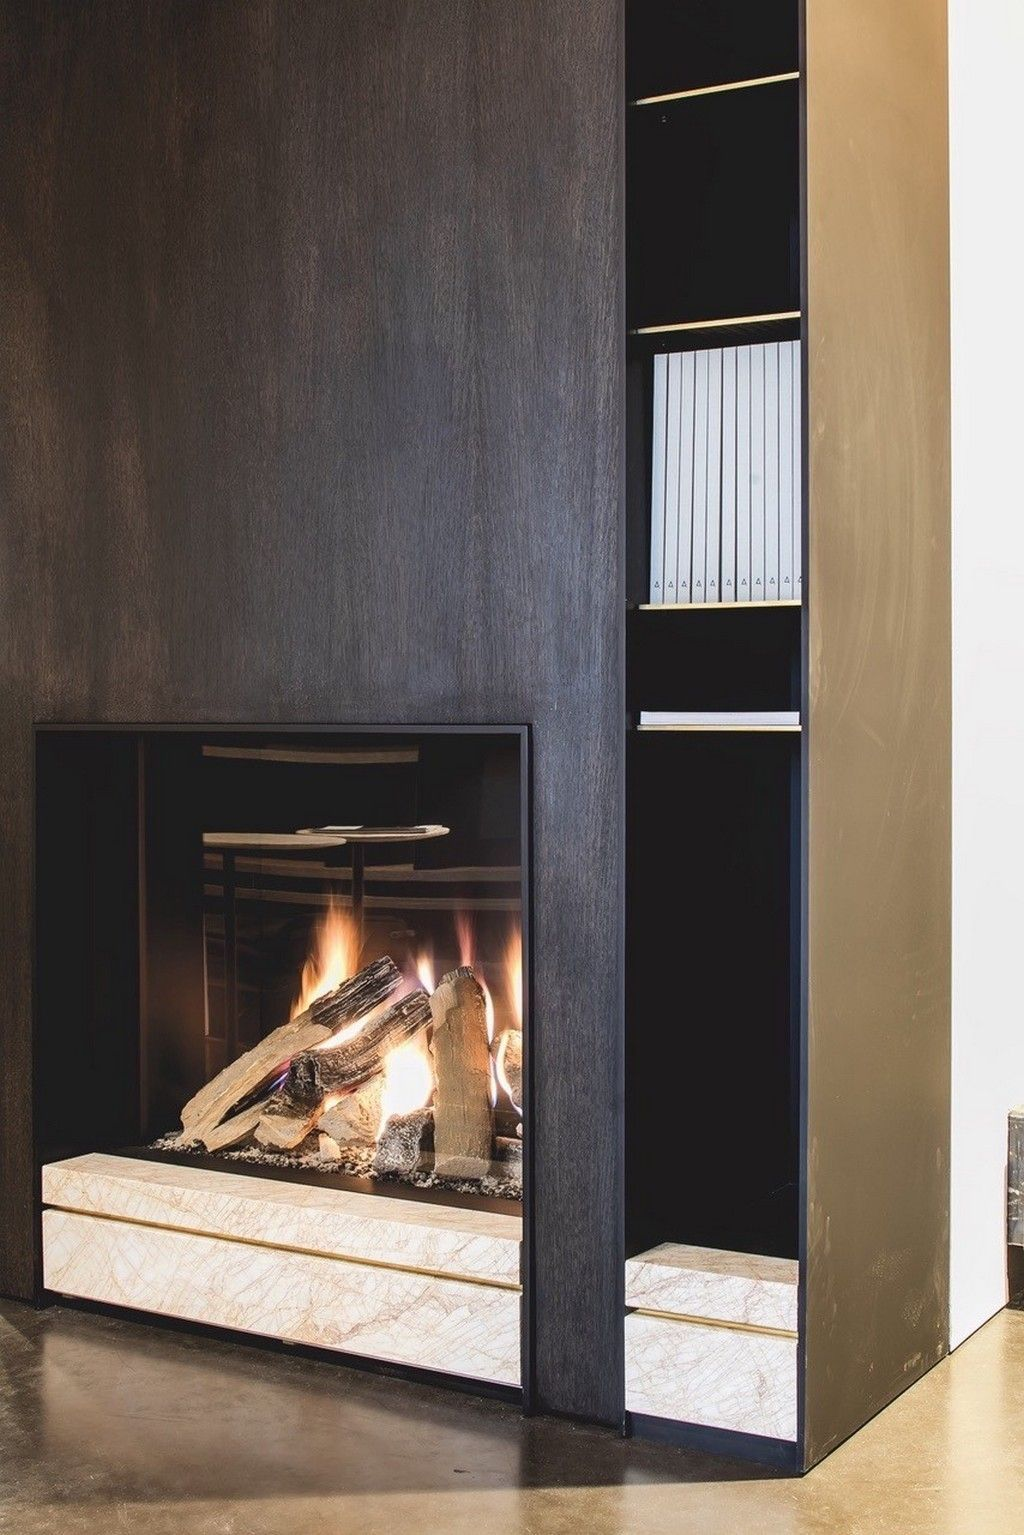 Fire place golden spider natural stone by potier